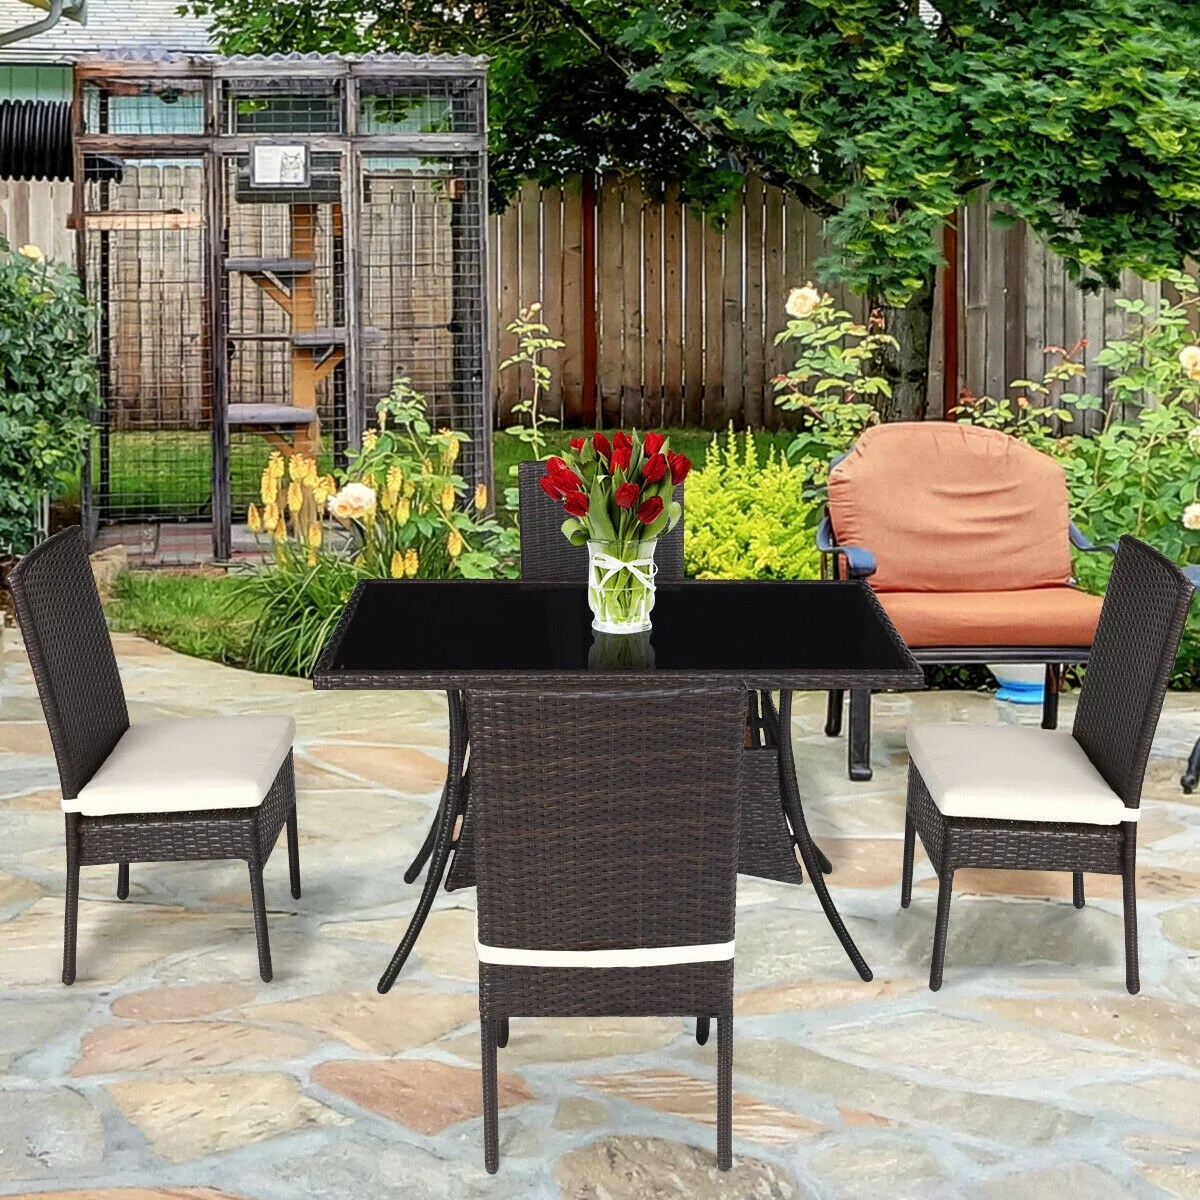 costway 5 piece outdoor patio furniture rattan dining table cushioned chairs set walmart com